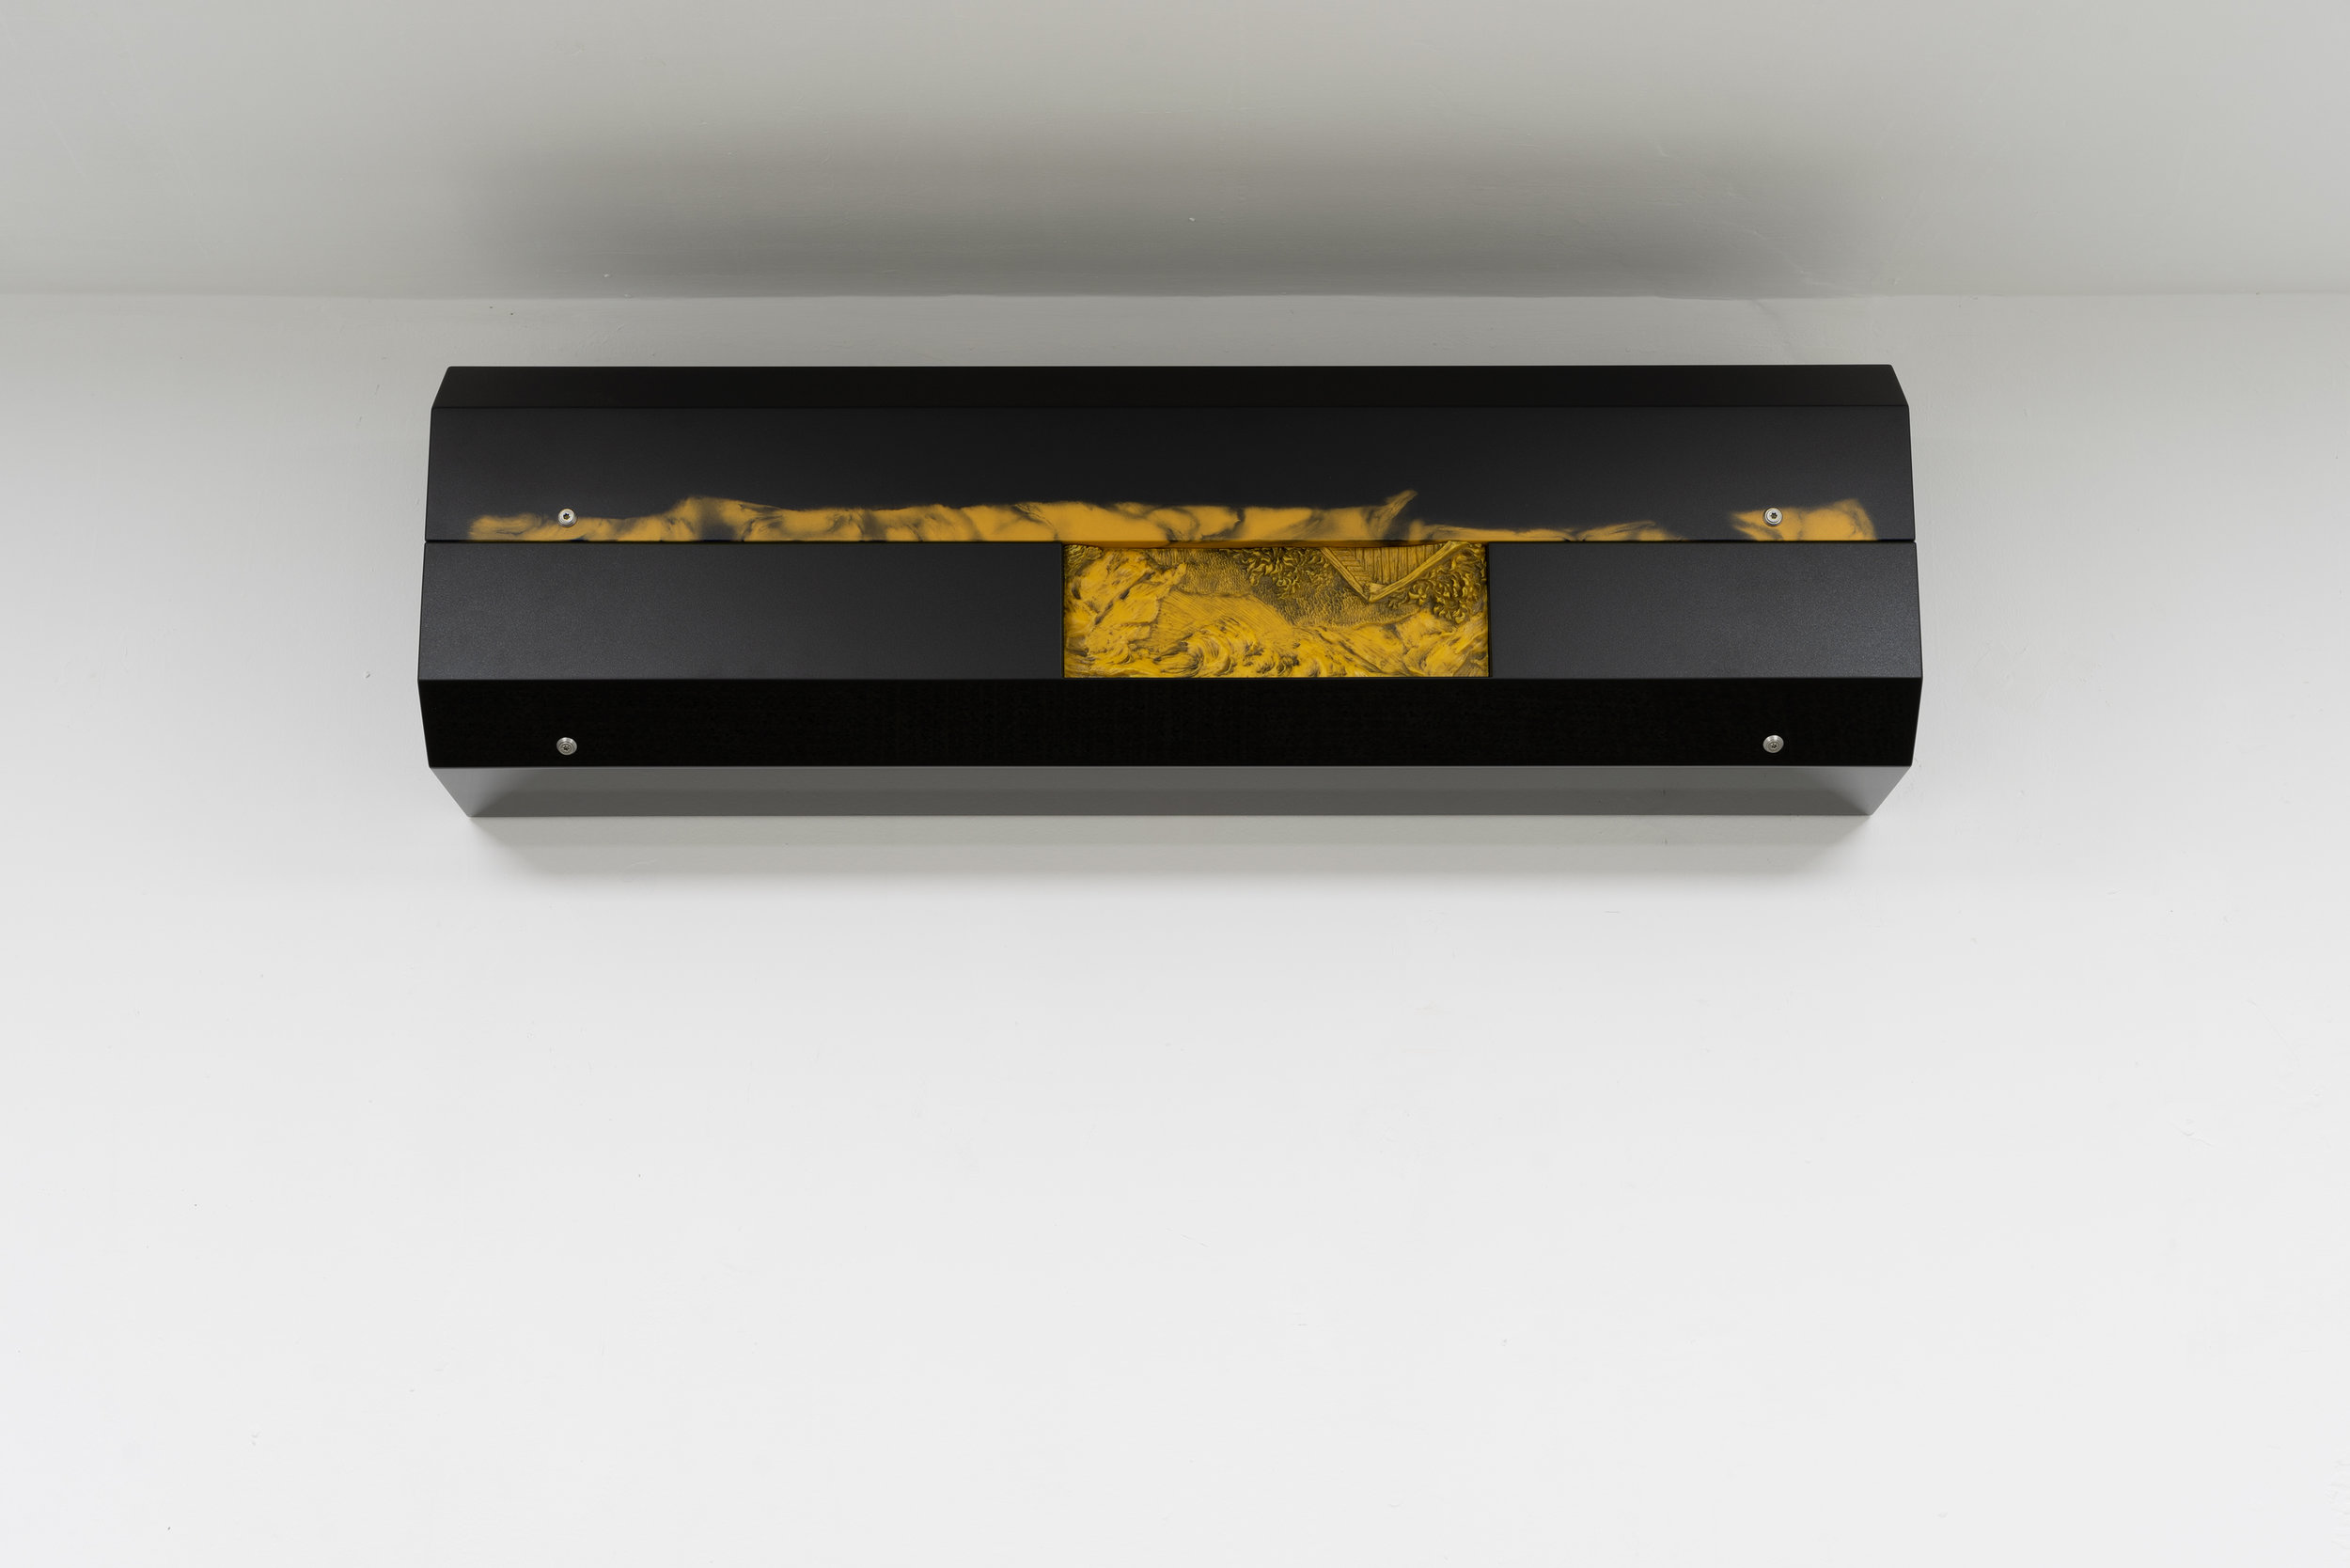 Philip Seibel,  Radiator (The Yellow Mill),  2019, 104 x 30 x 20 cm, Mdf, found and altered wax relief, PUR paint, UP resin, oil paint, screws